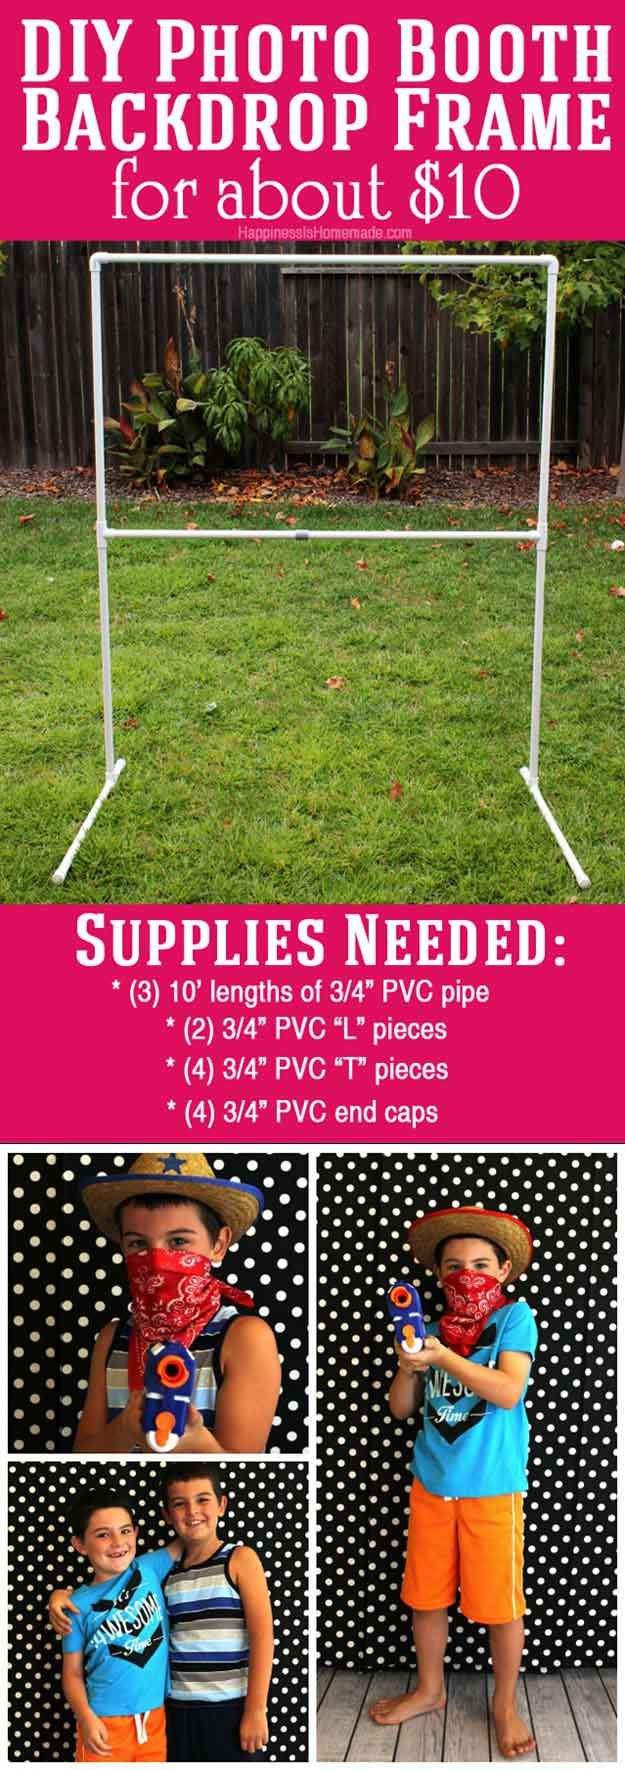 Best 25 diy photo booth ideas on pinterest diy wedding photo 25 diy photo booth ideas for your next shindig solutioingenieria Images